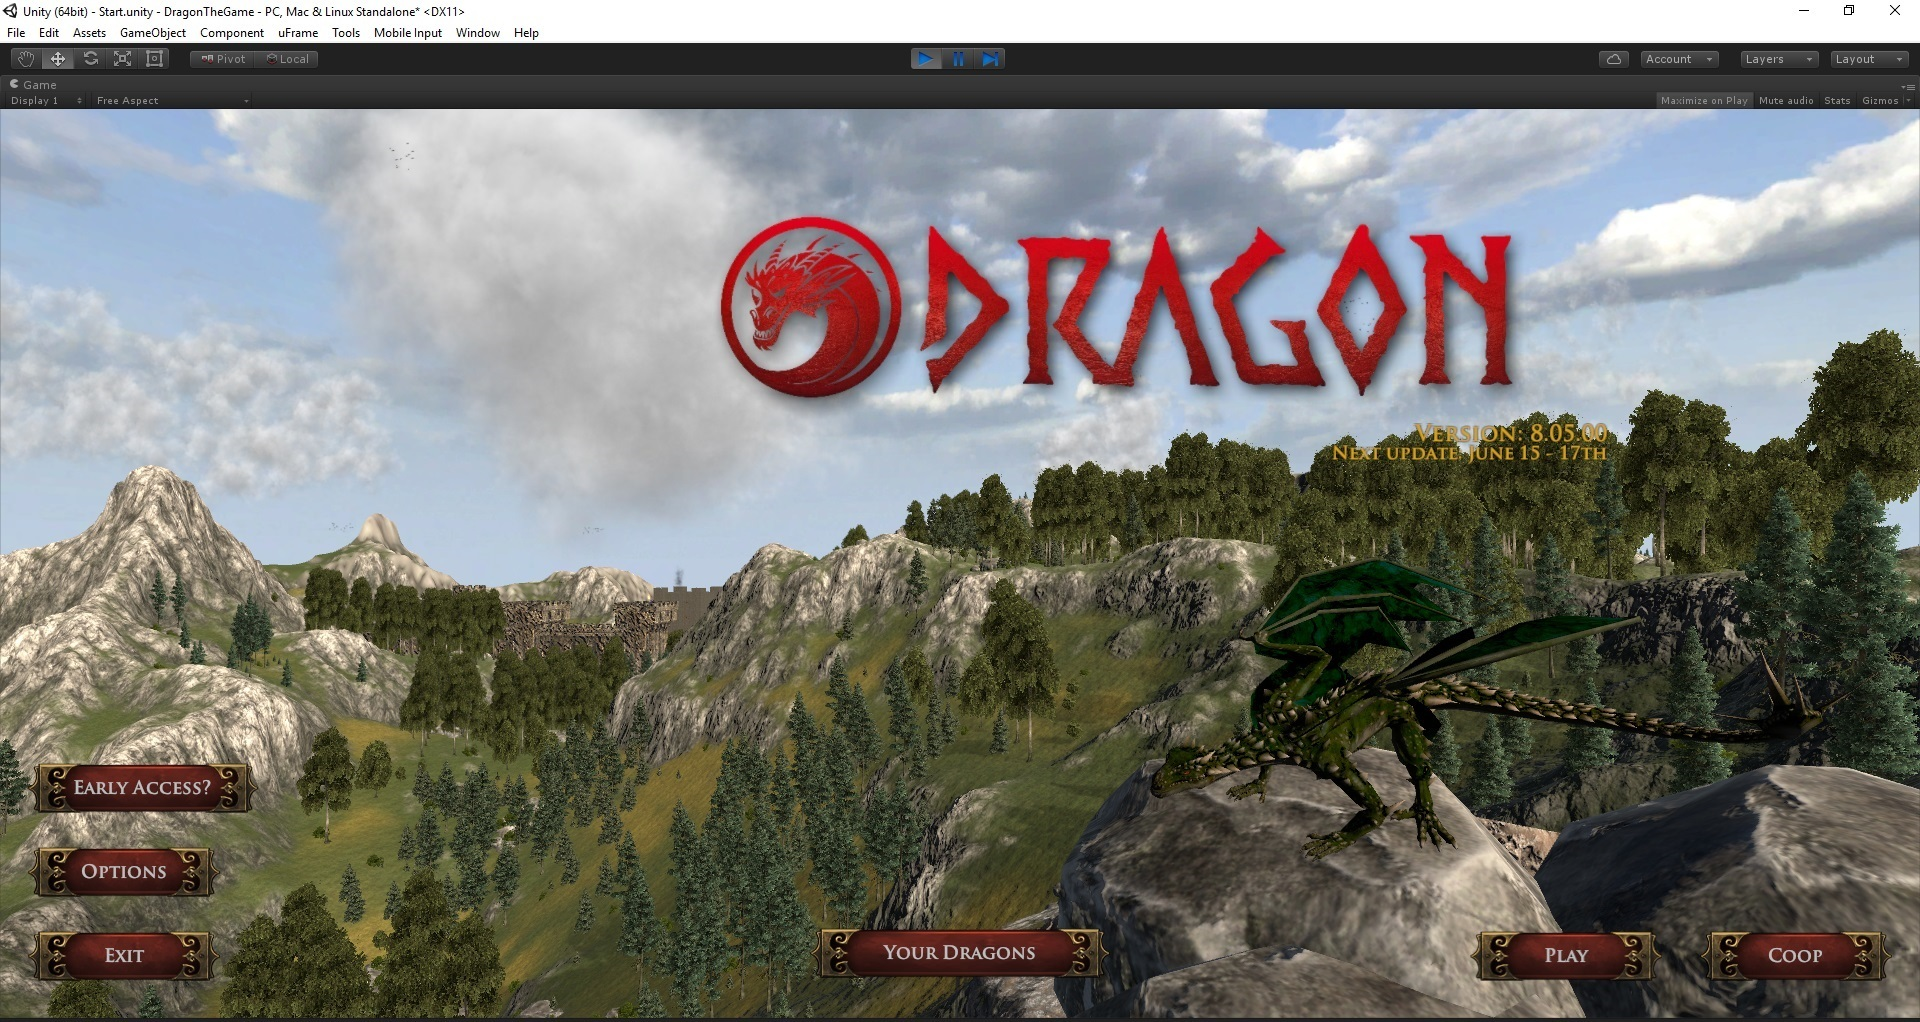 Dragon the game november update option 3 transition to world map and zones little game play ready this is where the game is headed but there is admittedly not much to do gumiabroncs Gallery